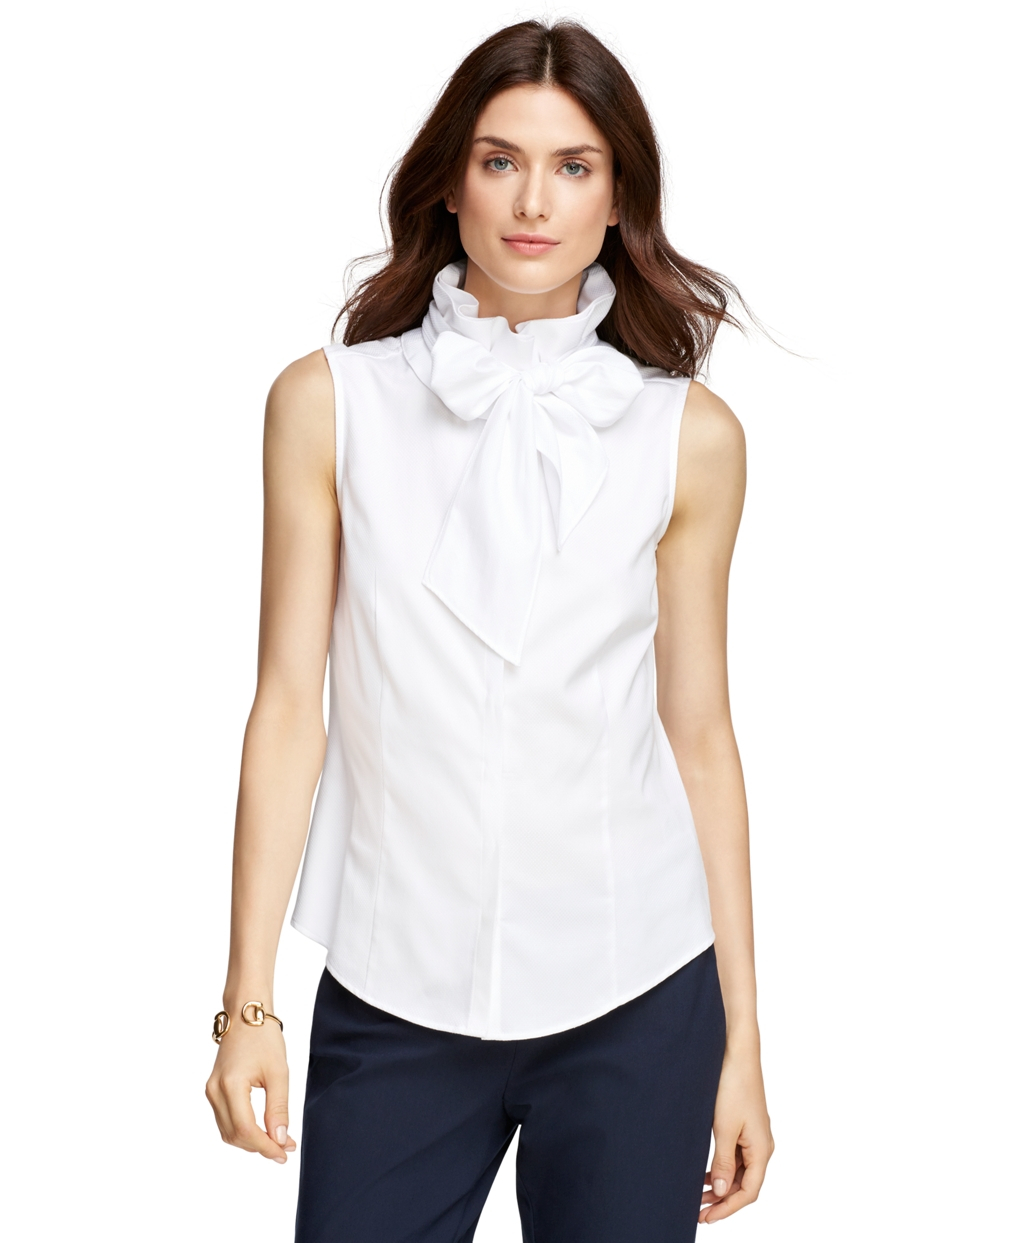 Lyst brooks brothers sleeveless dress shirt in white for White dress workout shirt